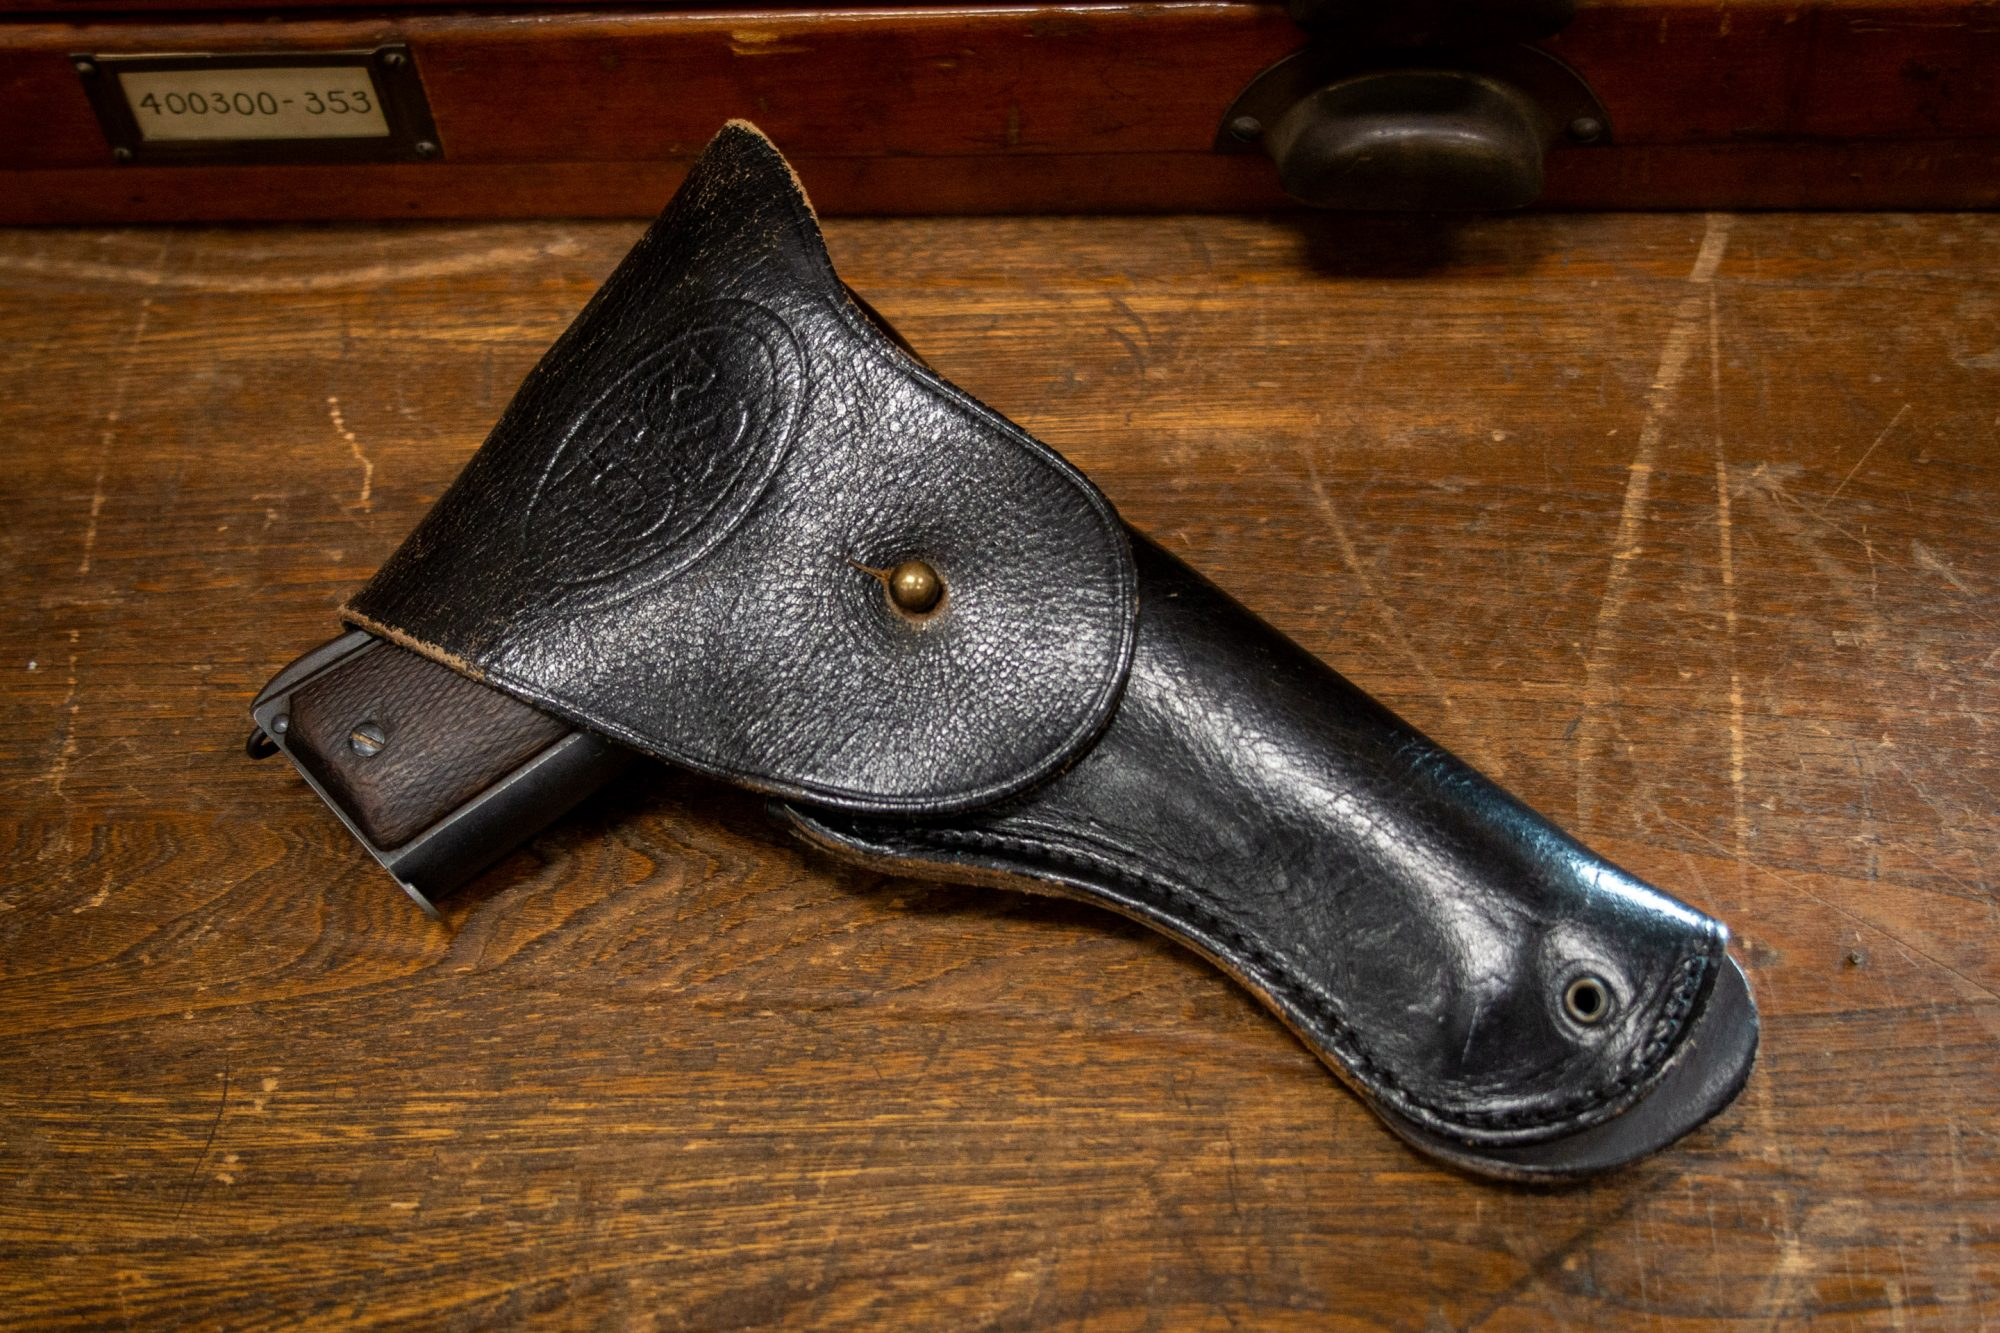 Photo of pre-owned Argentino Colt 1911 extras, for sale by Turnbull Restoration of Bloomfield, NY